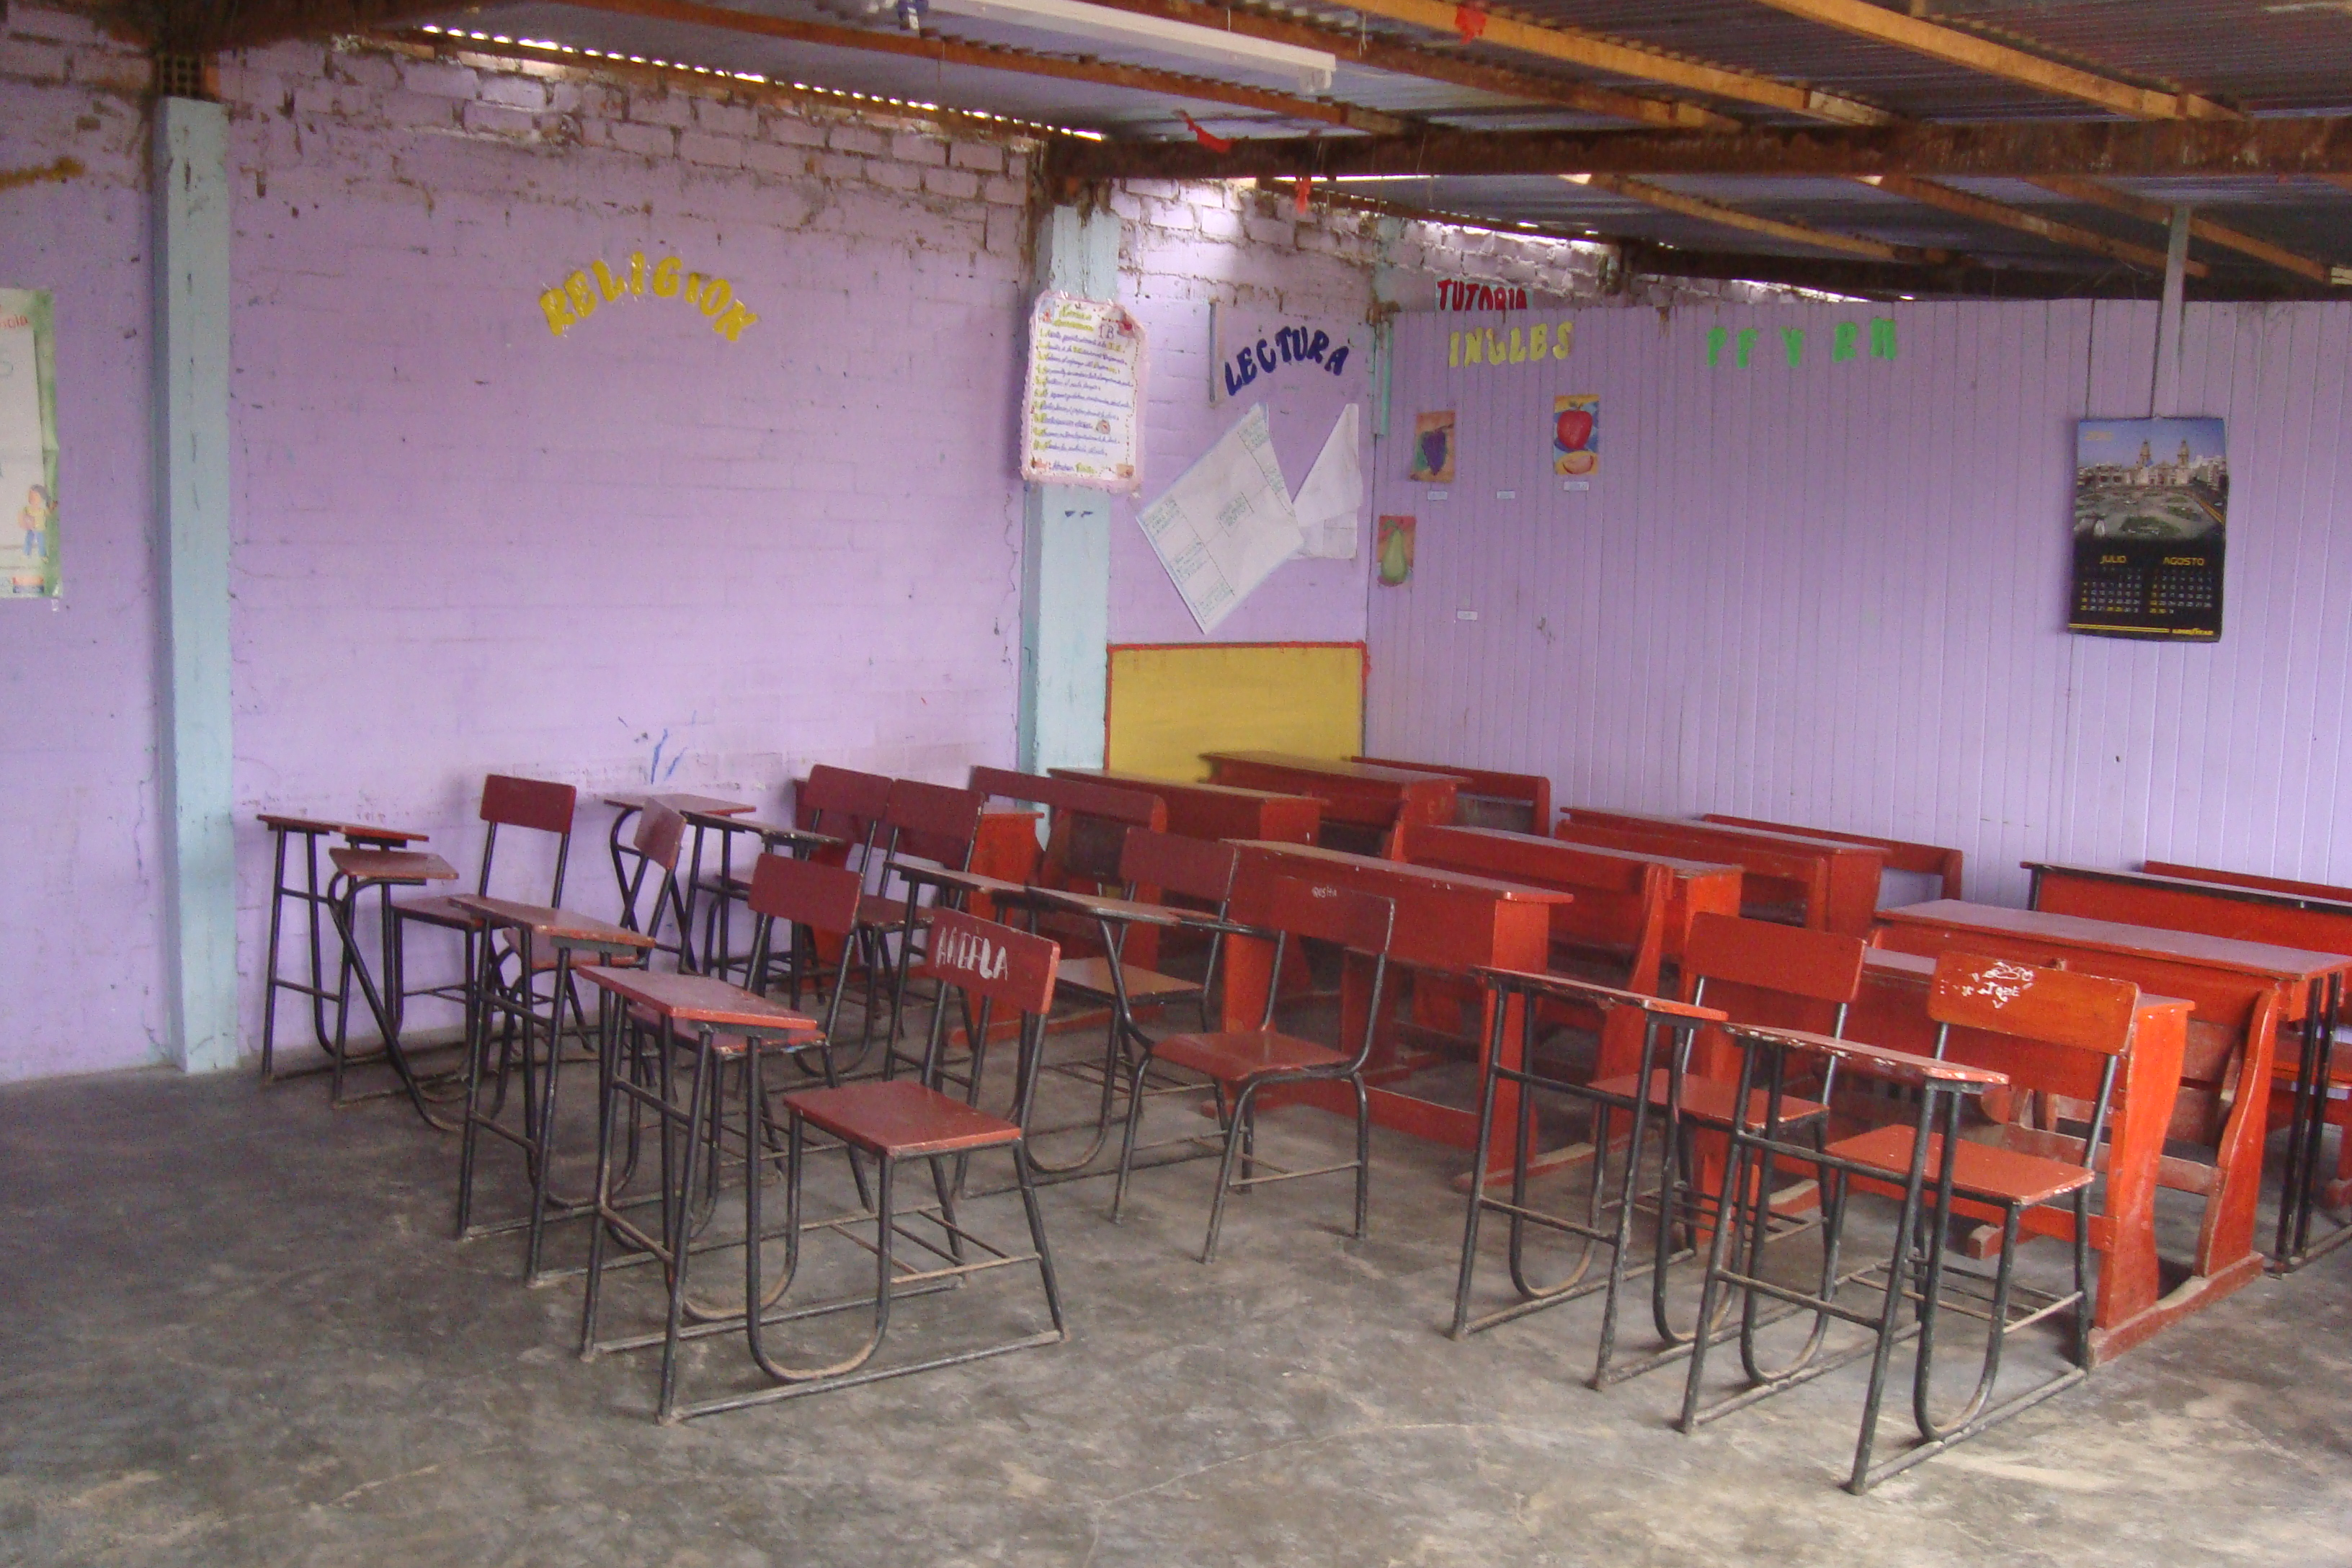 classrooms-before-1-chantal-pcs-conflicted-copy-2013-11-15_11431600543_o